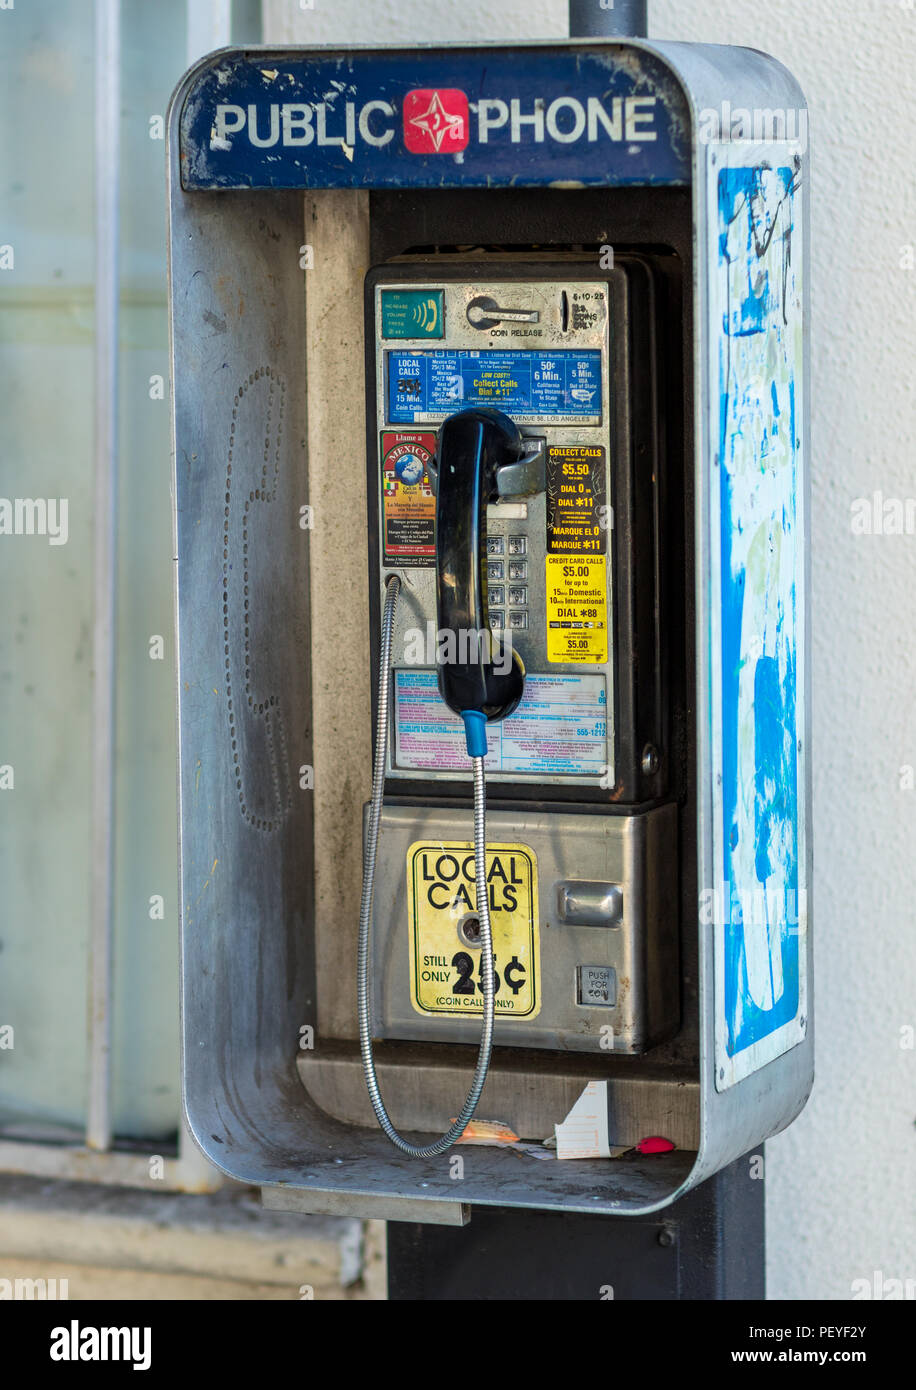 Public pay phone - Stock Image